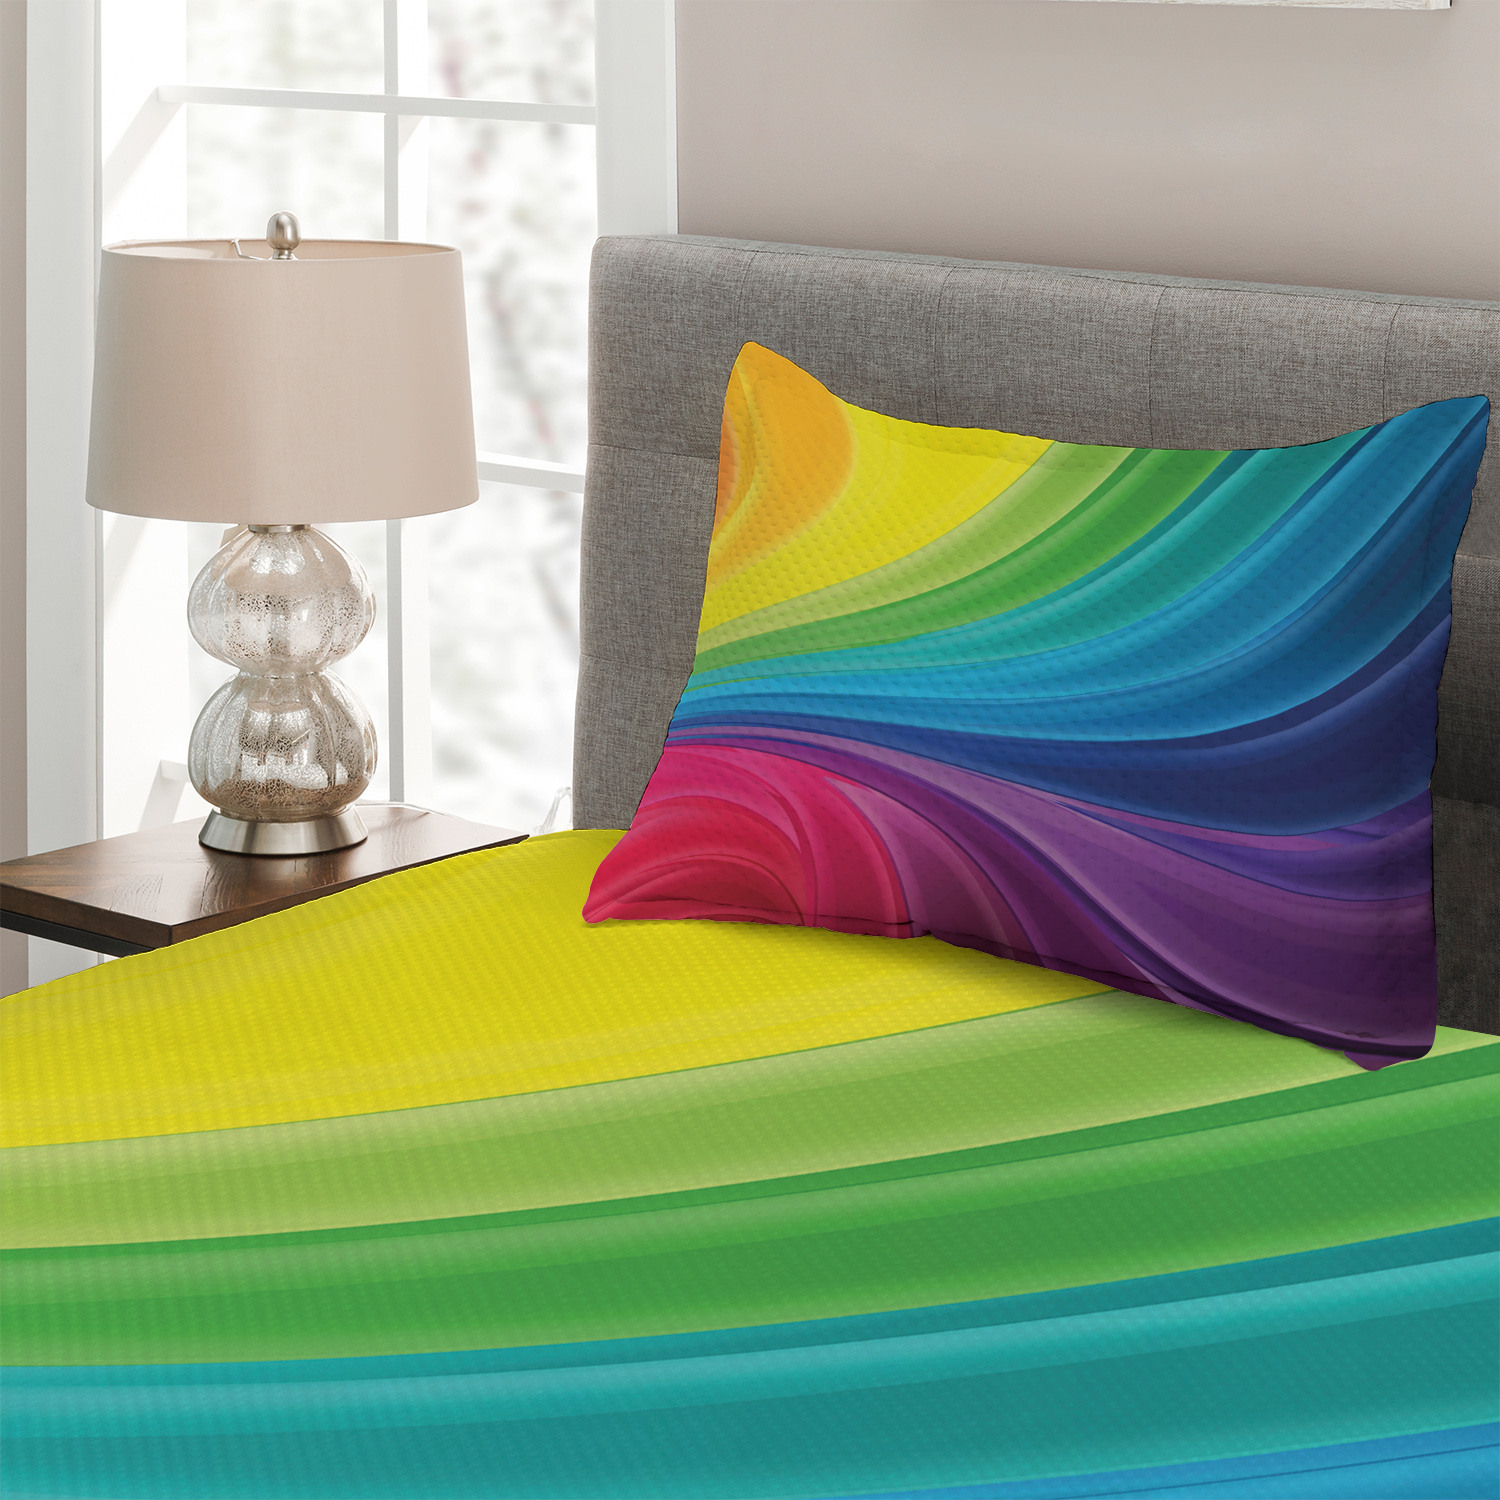 Colorful-Quilted-Coverlet-amp-Pillow-Shams-Set-Abstract-Smooth-Lines-Print thumbnail 3